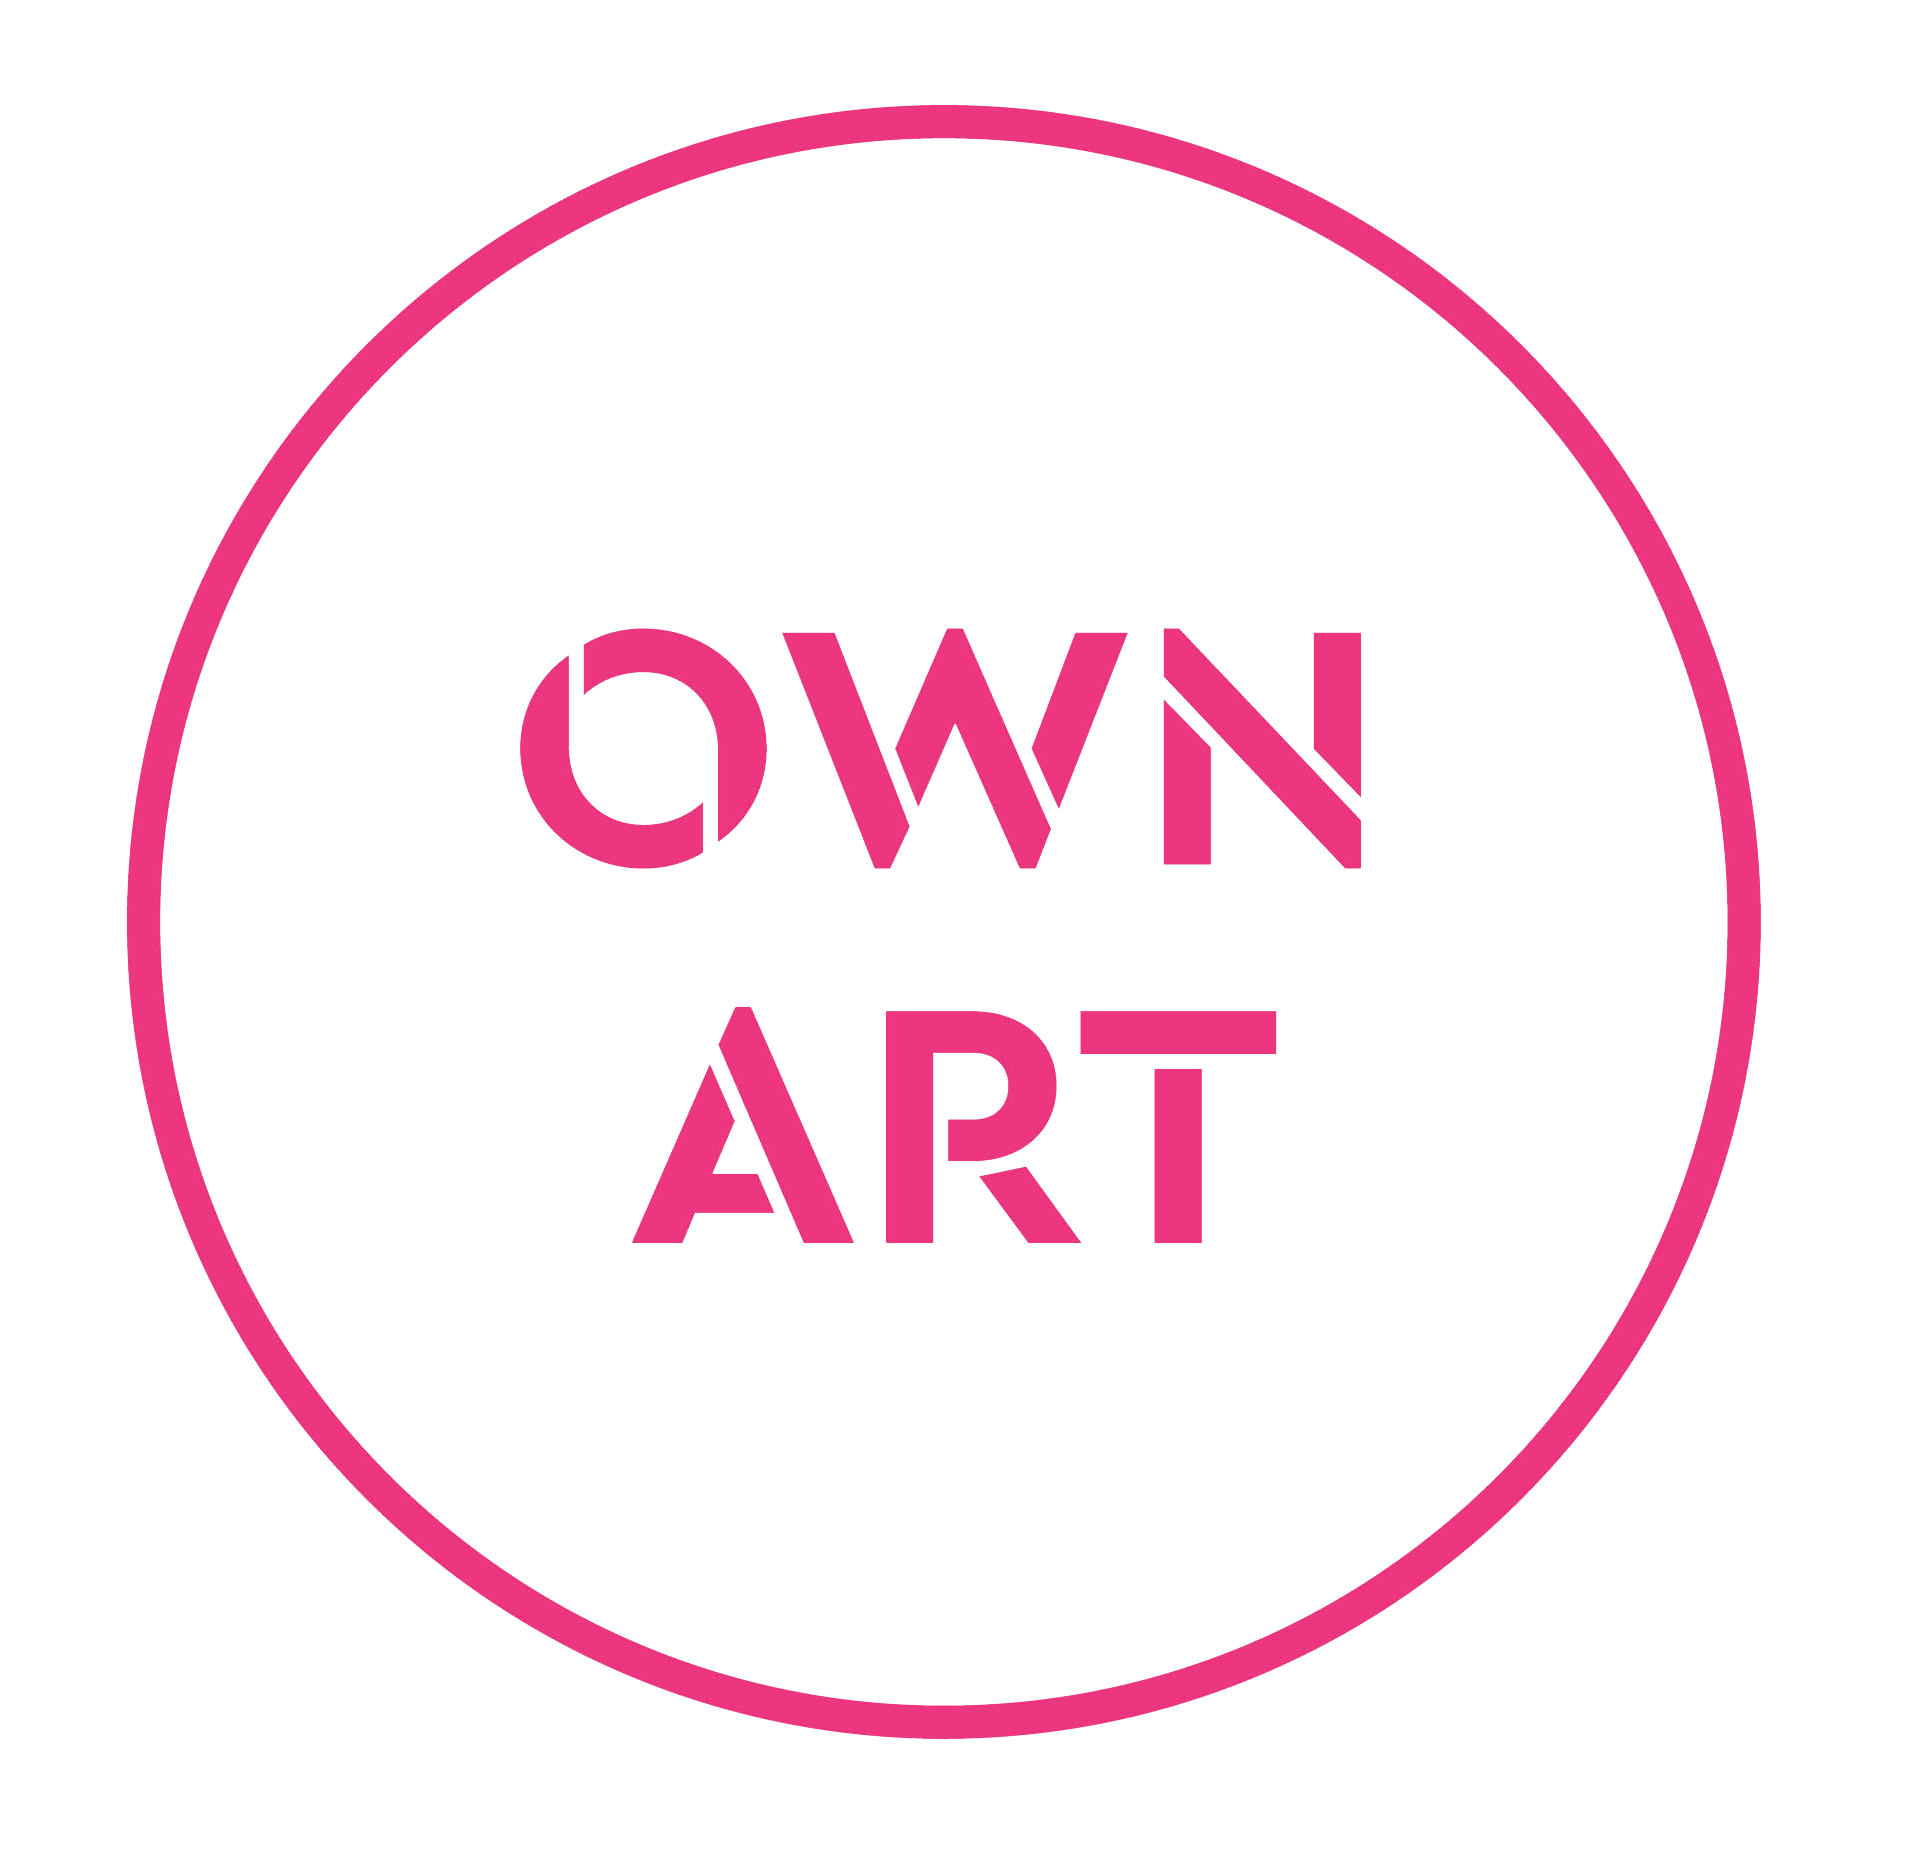 own-art-logo.png